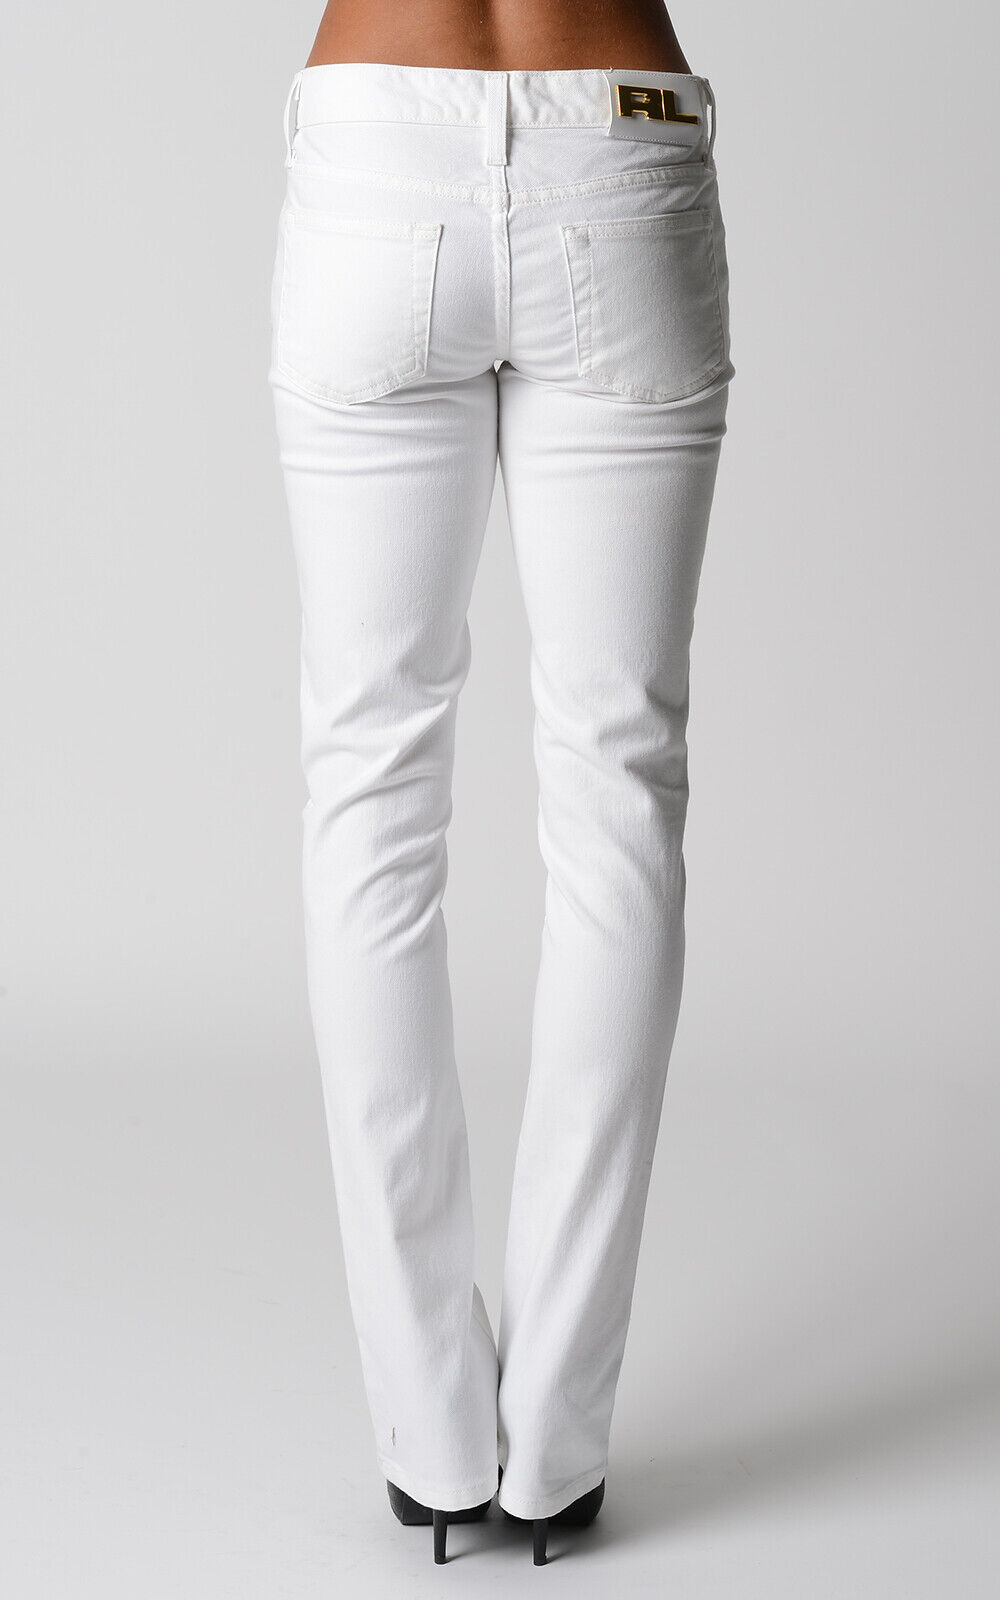 Ralph Lauren 380 Women's Stretch White Slim Fit Jeans Size 28 Gift For Her NWT